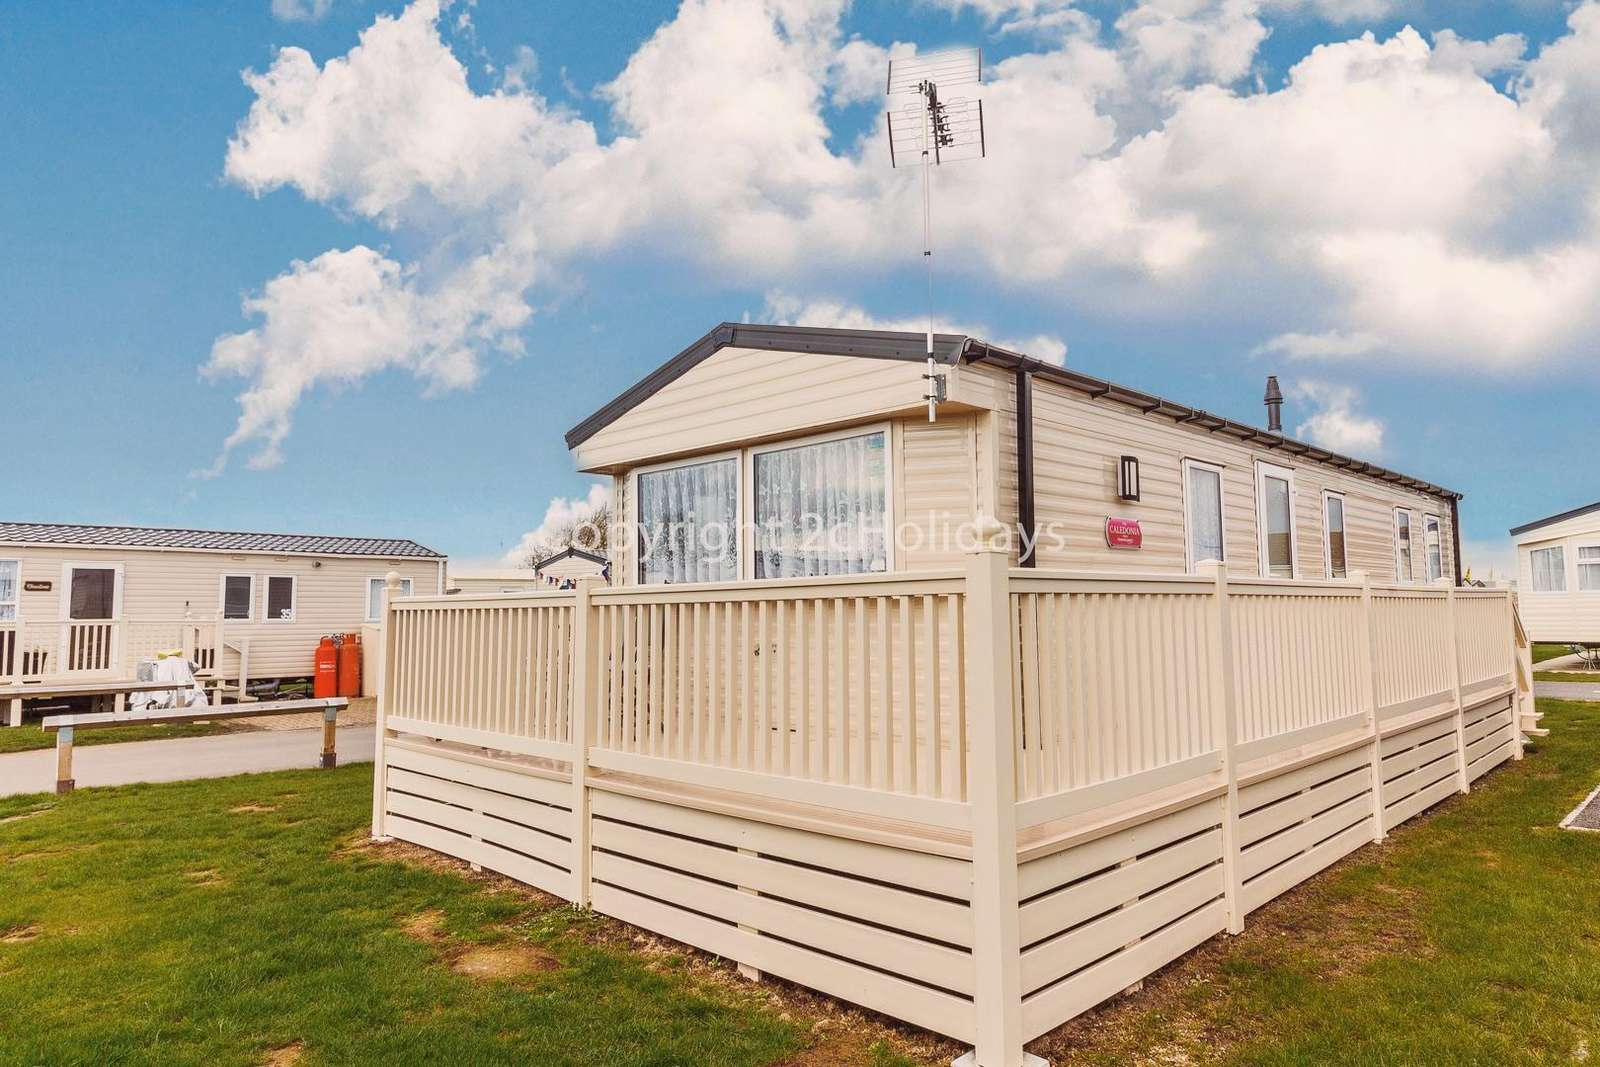 Beautiful caravan with homely touches and a modern design.